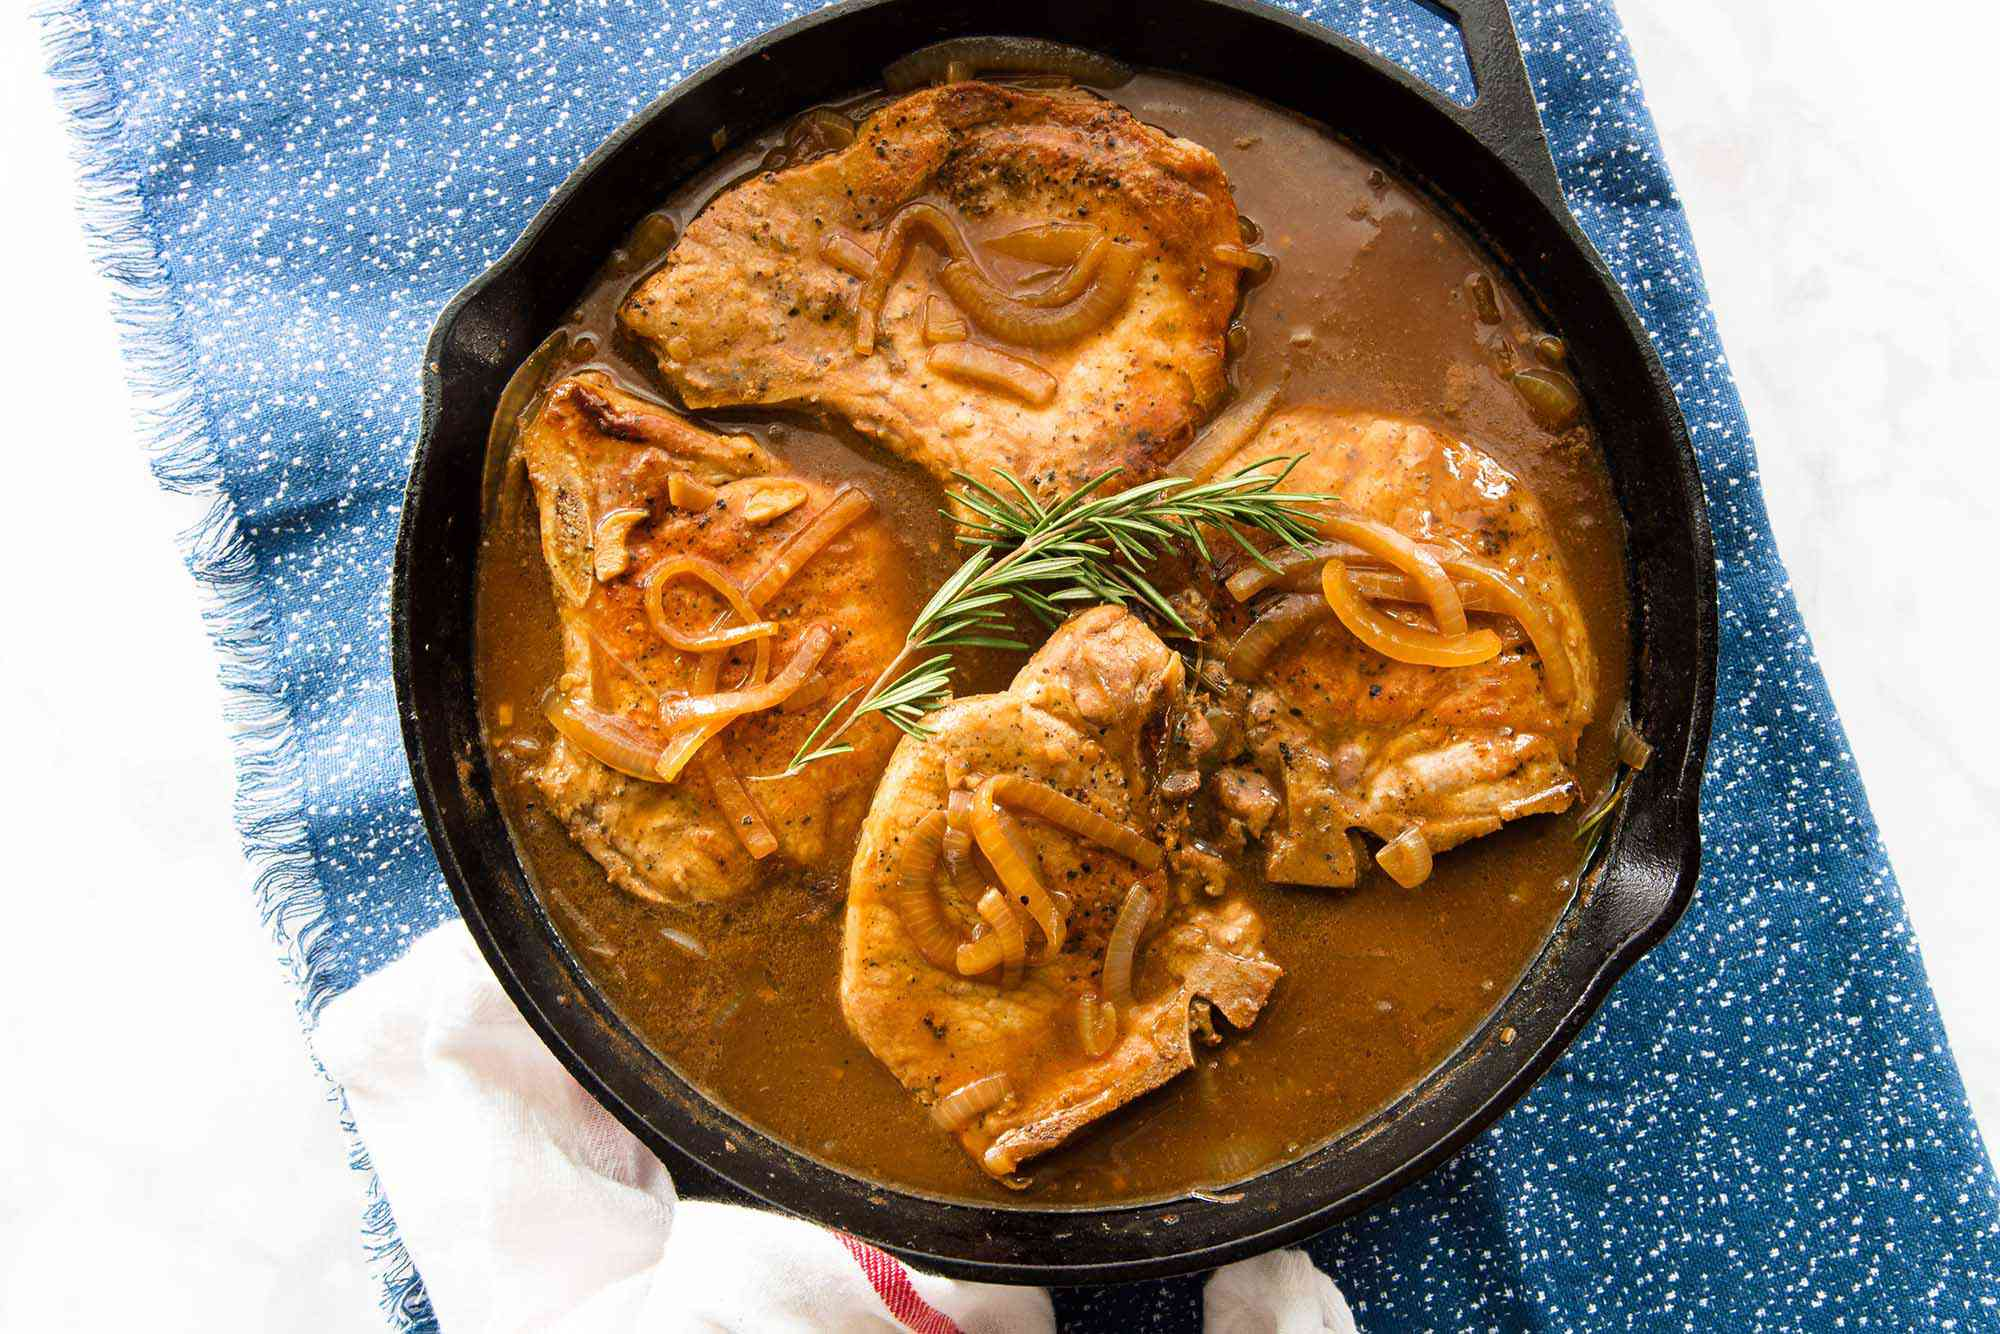 Smothered Pork Chops Recipe served in a cast iron pan